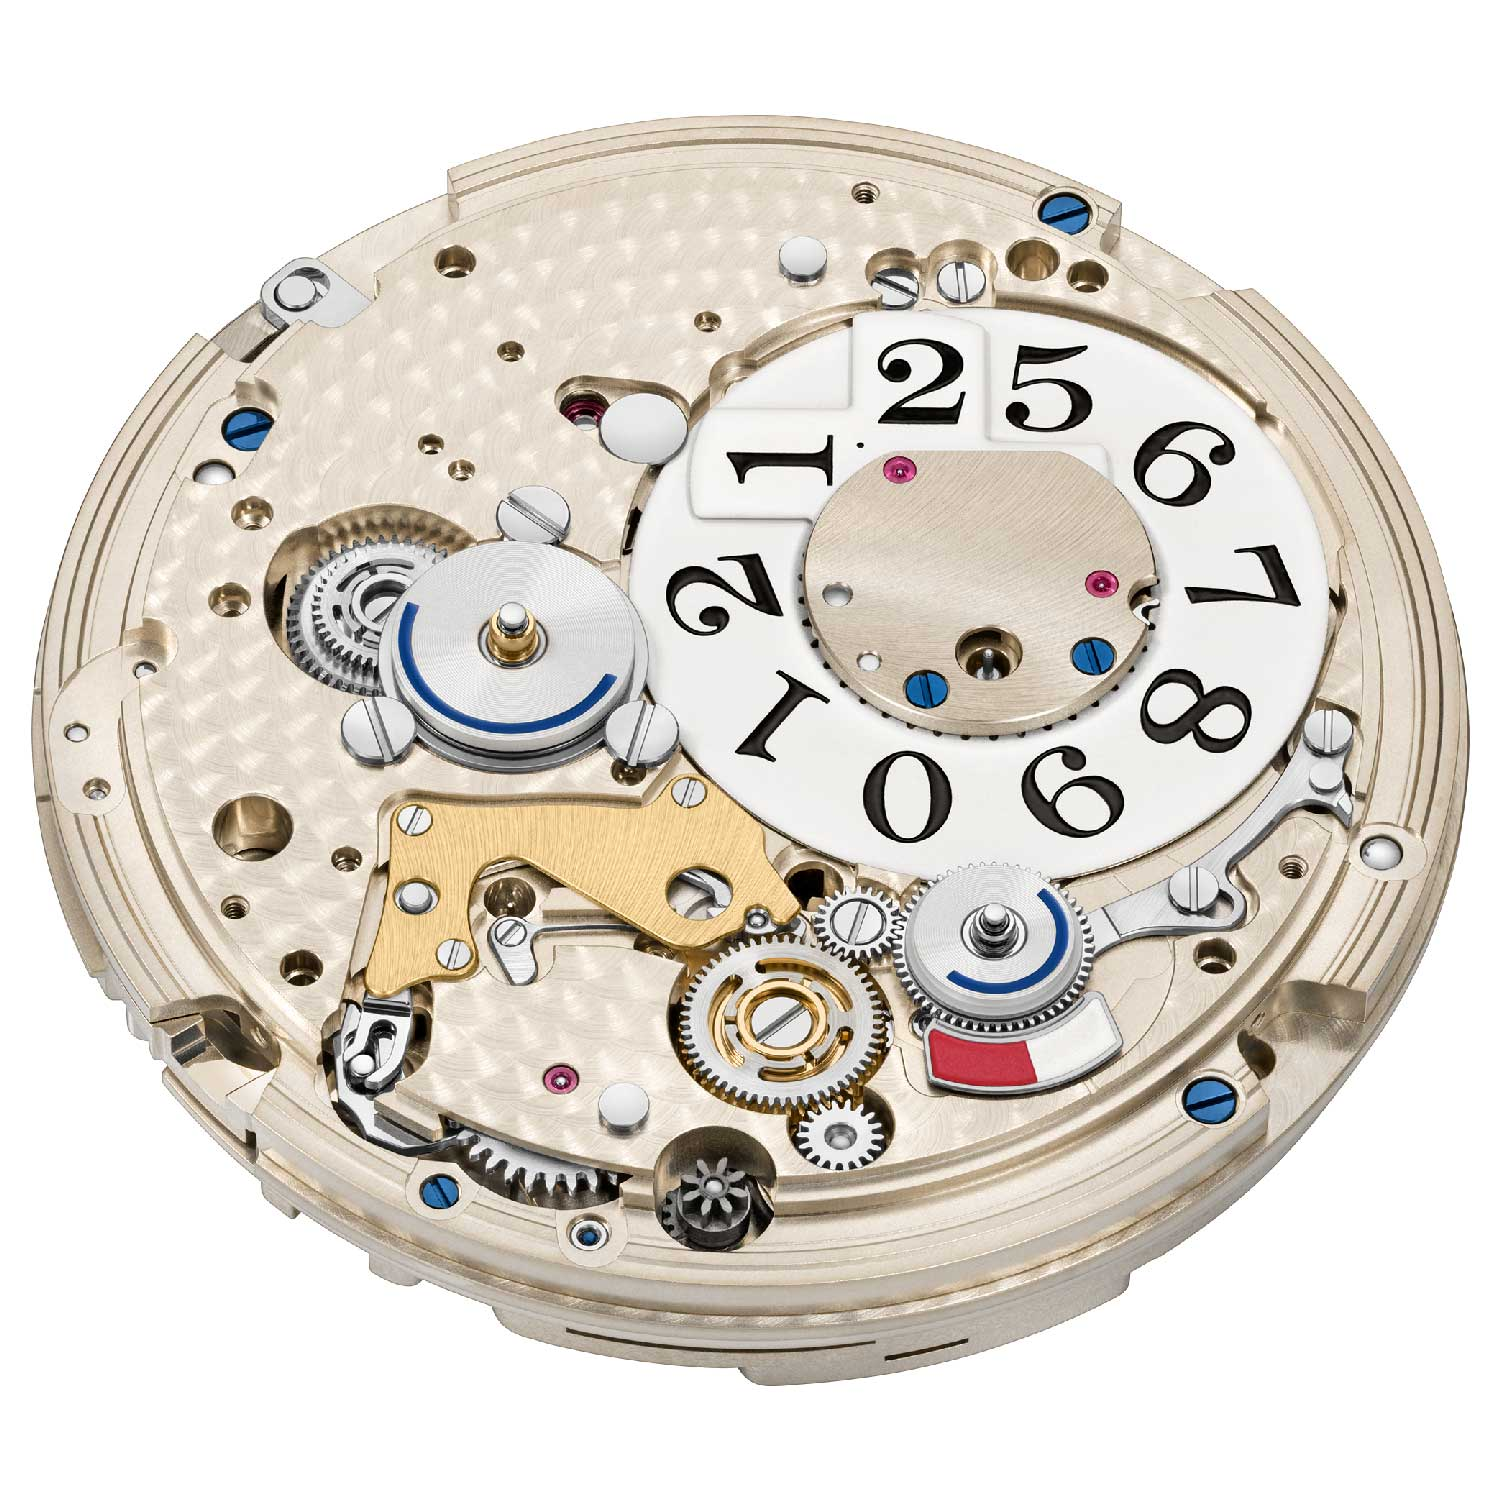 Dial side view of the new calibre L141.1